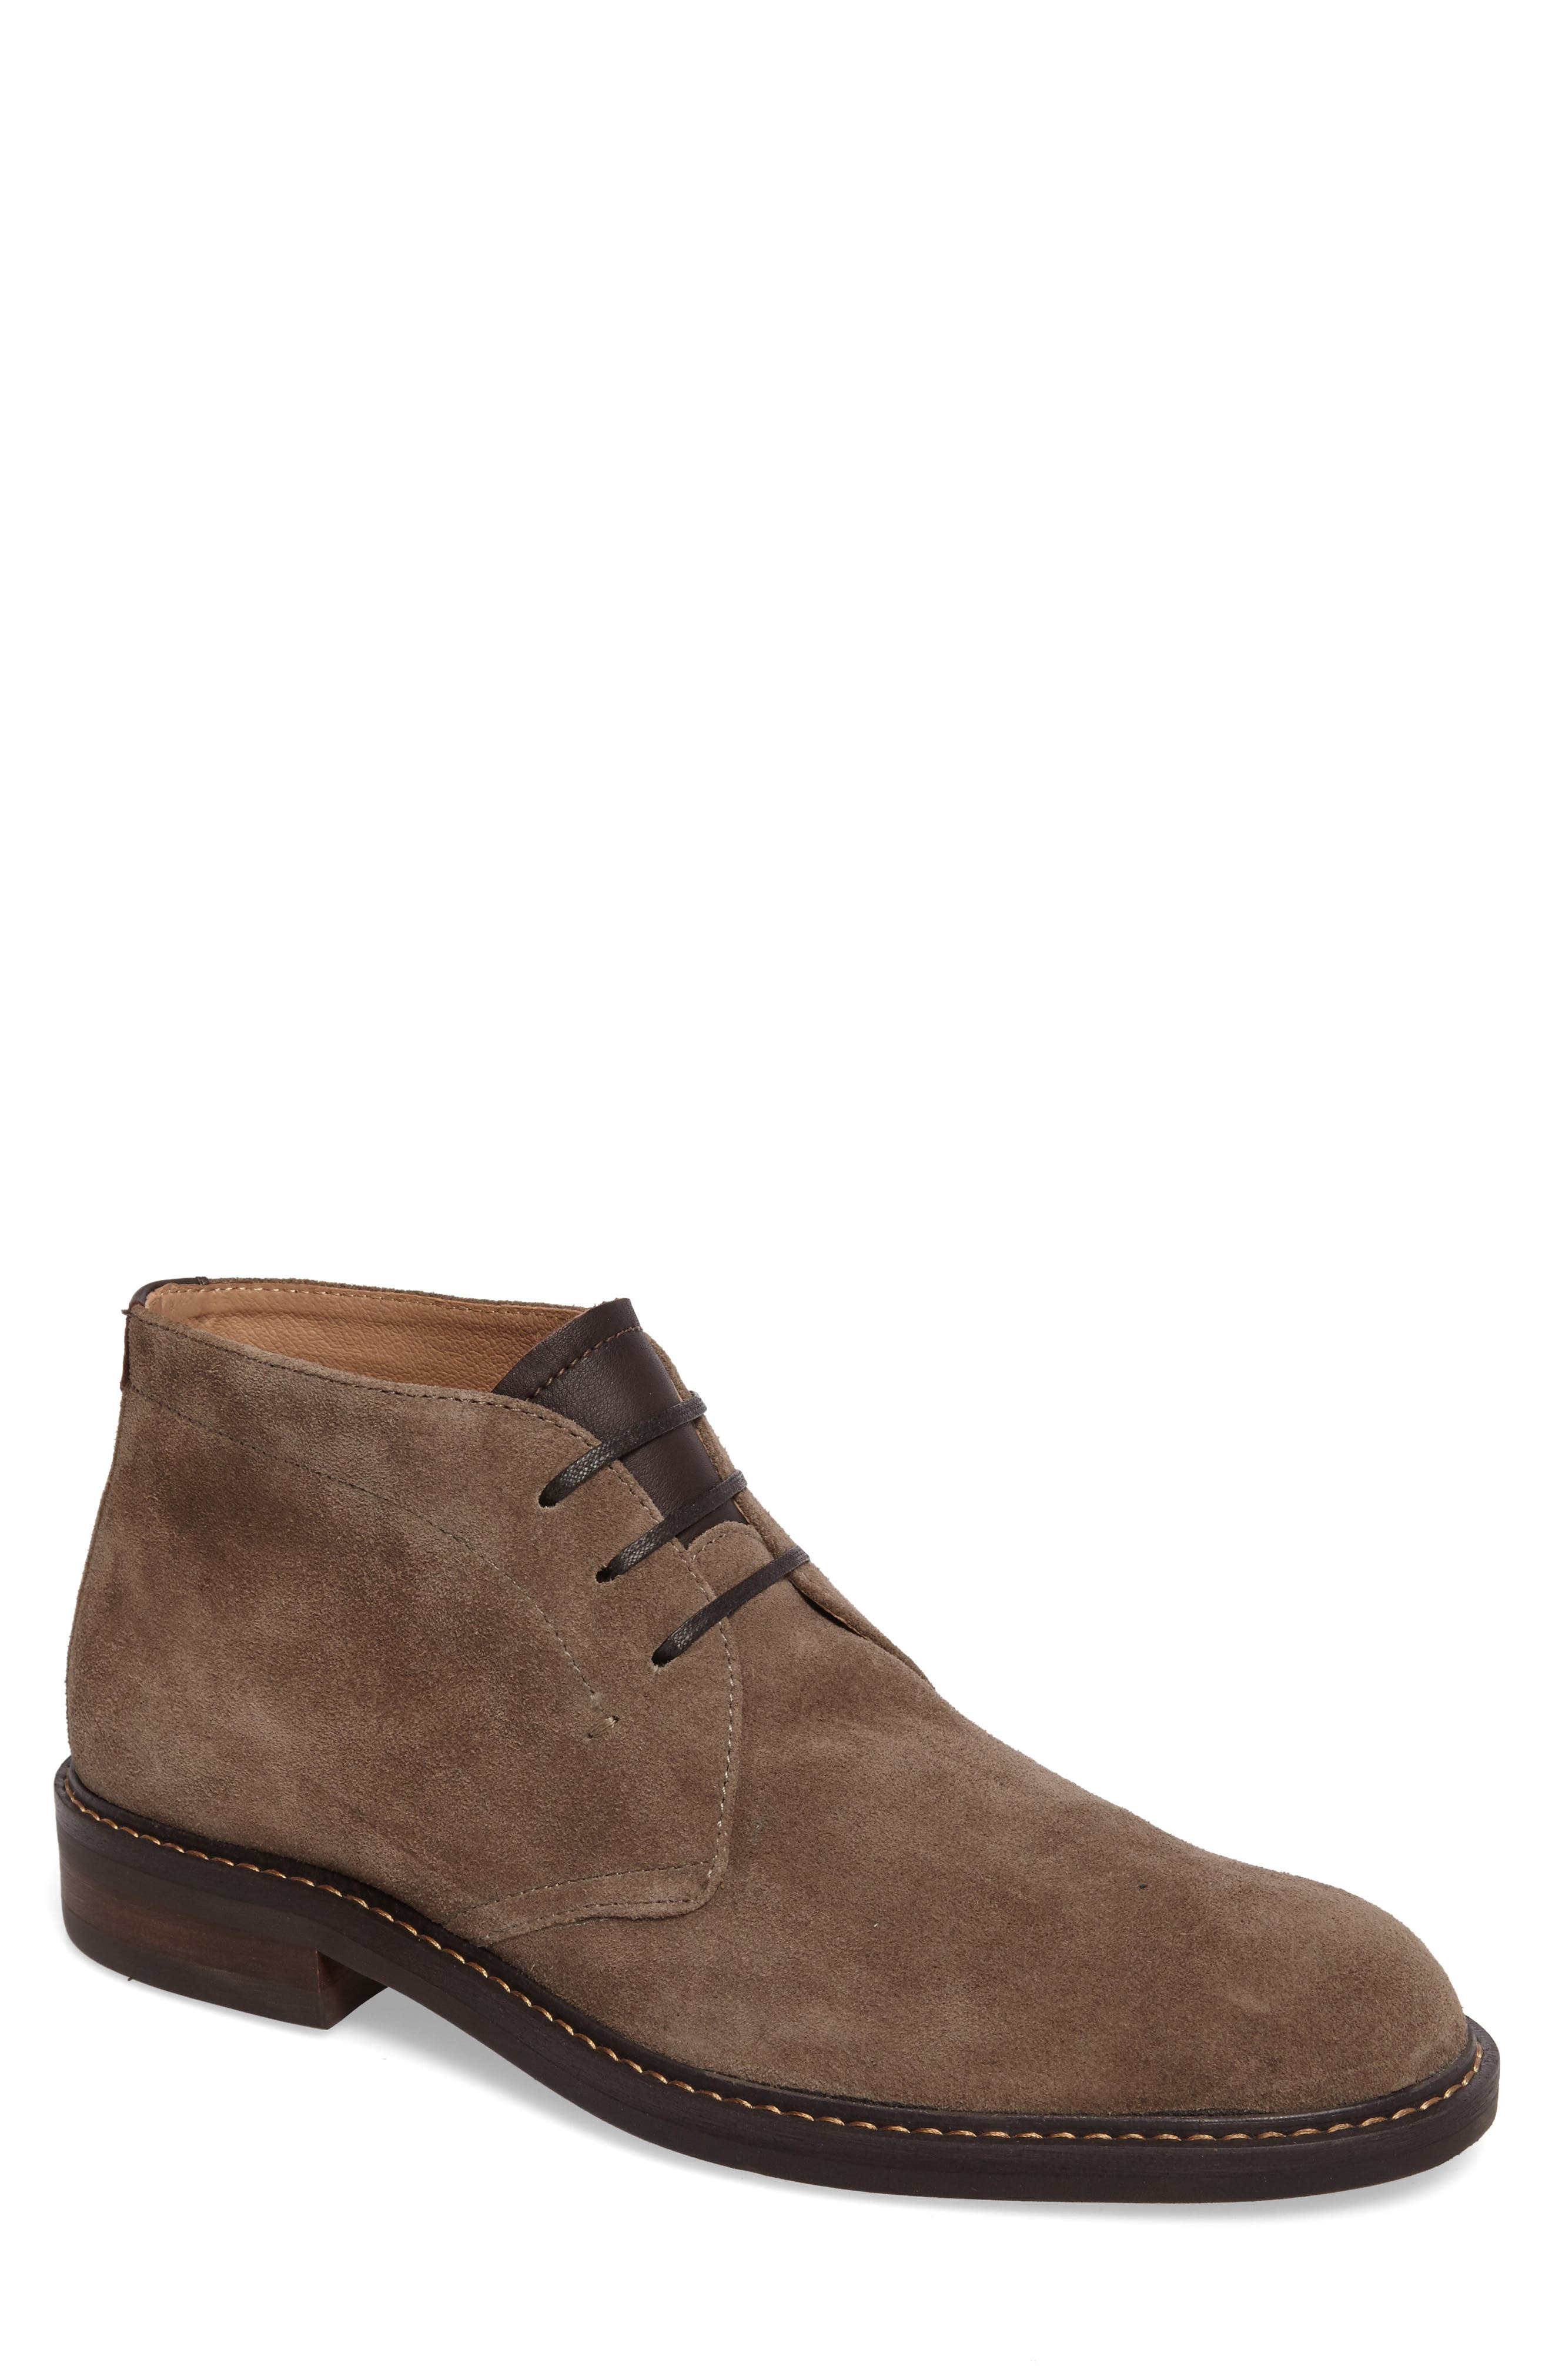 Barrett Chukka Boot,                         Main,                         color, Taupe Suede